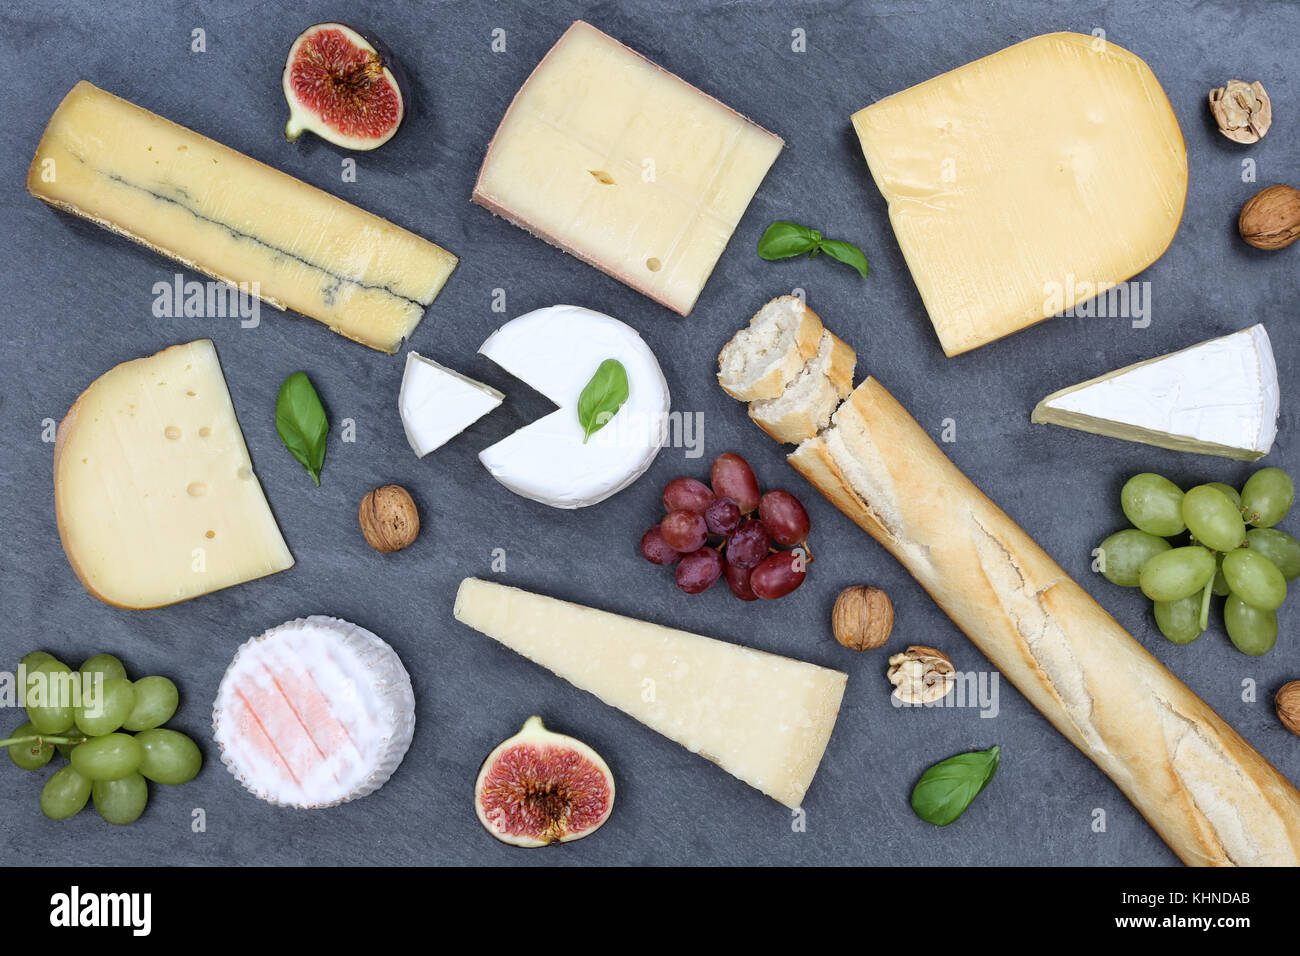 Cheese board platter plate Swiss bread Camembert slate top view from above - Stock Image